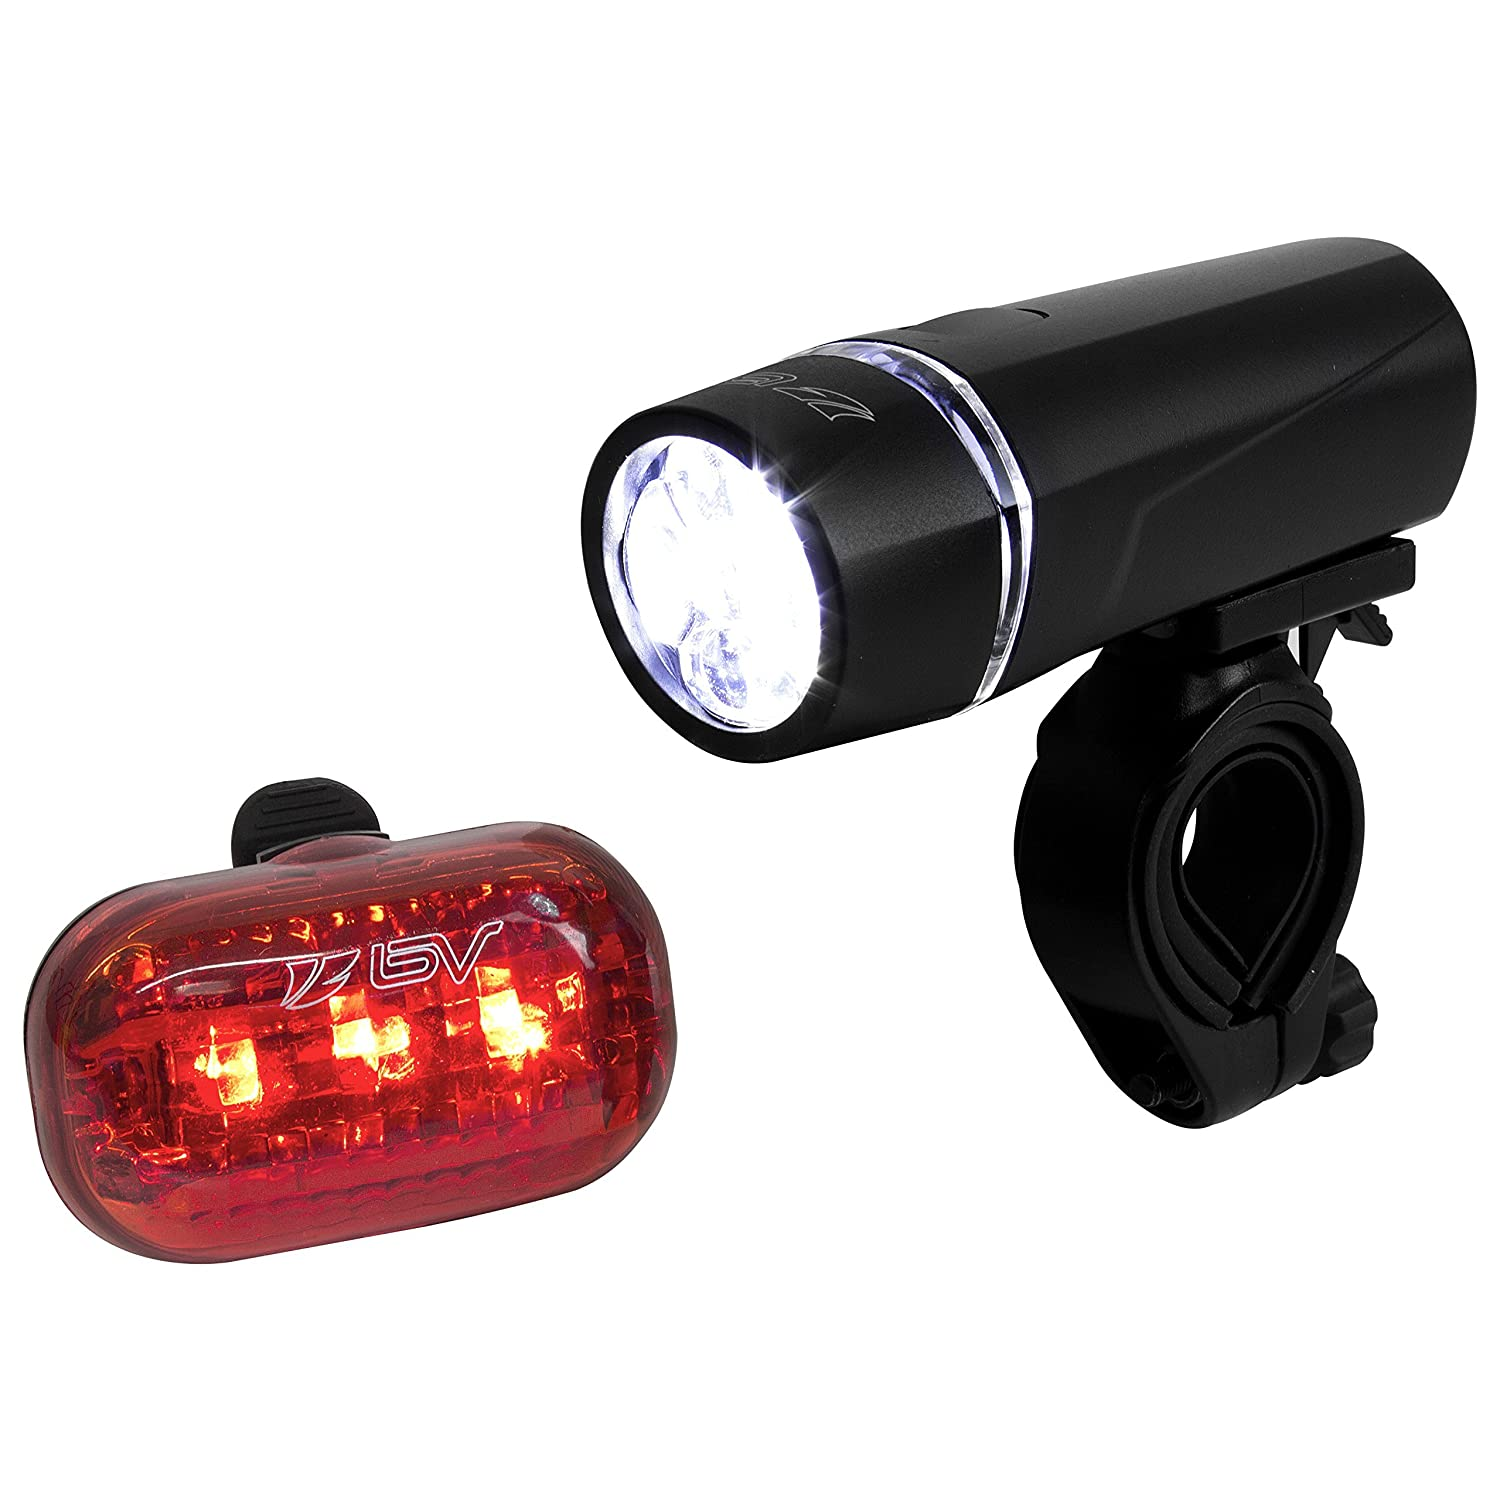 Super Bright 5 Led Headlight, 3 LED Taillight